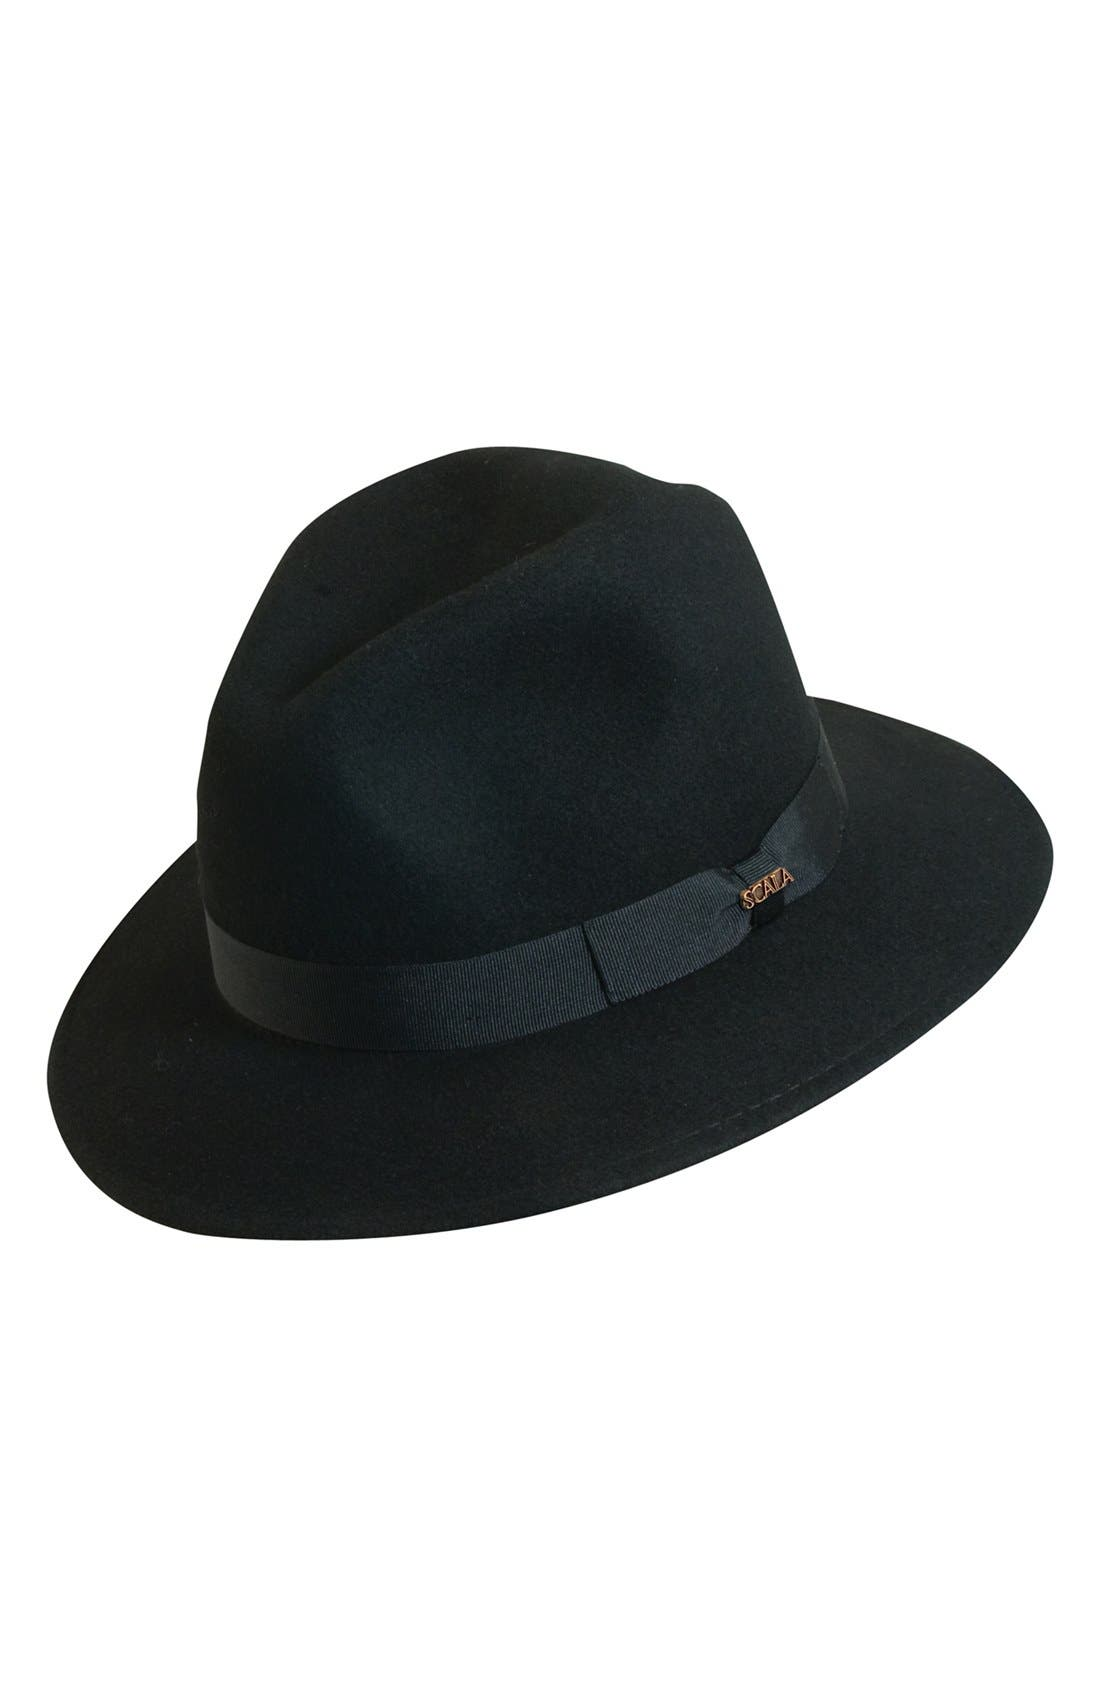 SCALA Classico Crushable Felt Safari Hat